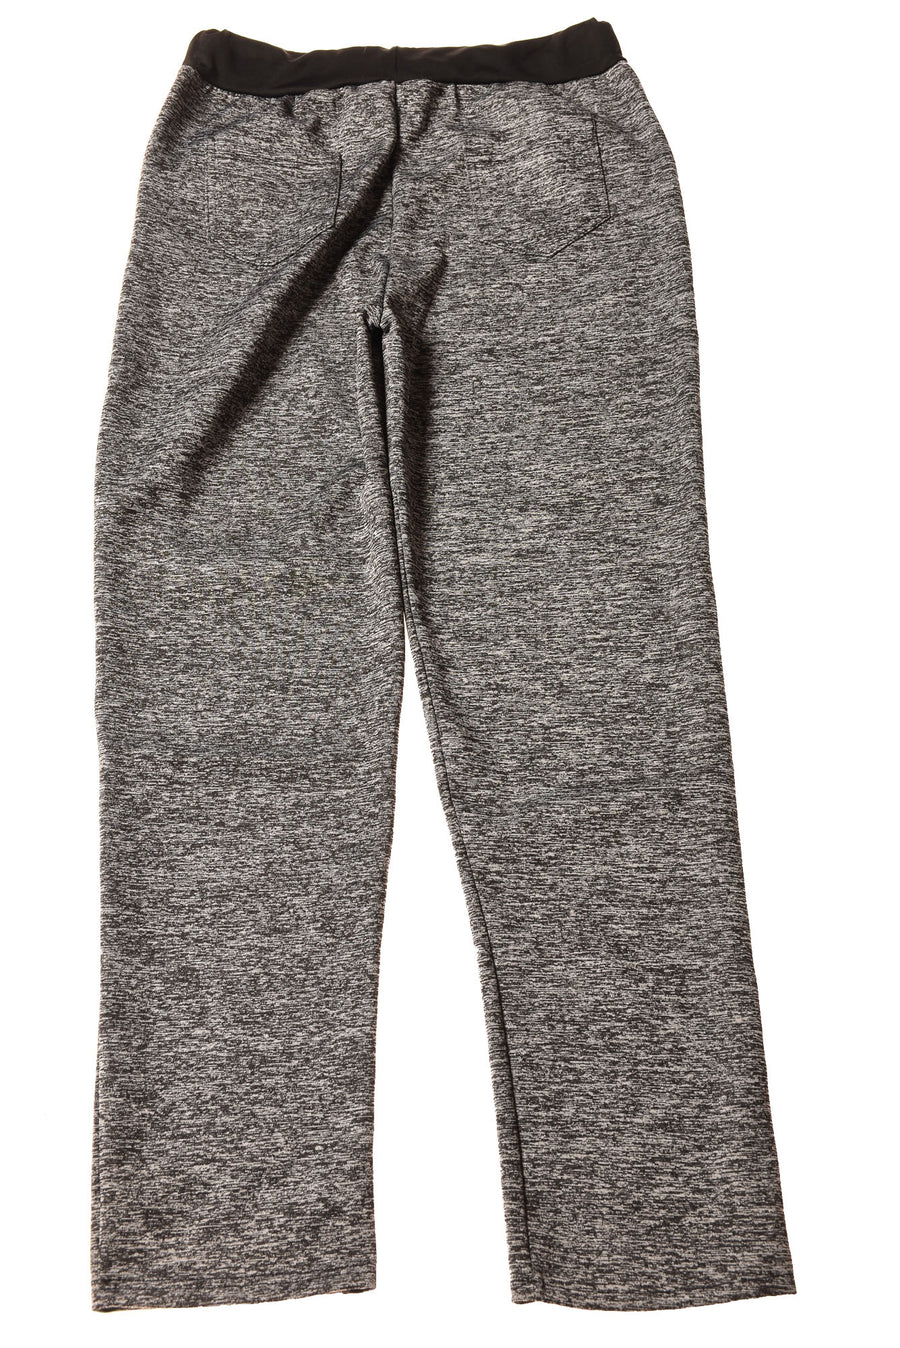 USED No Brand Women's Pants  8 Gray & Black / Print